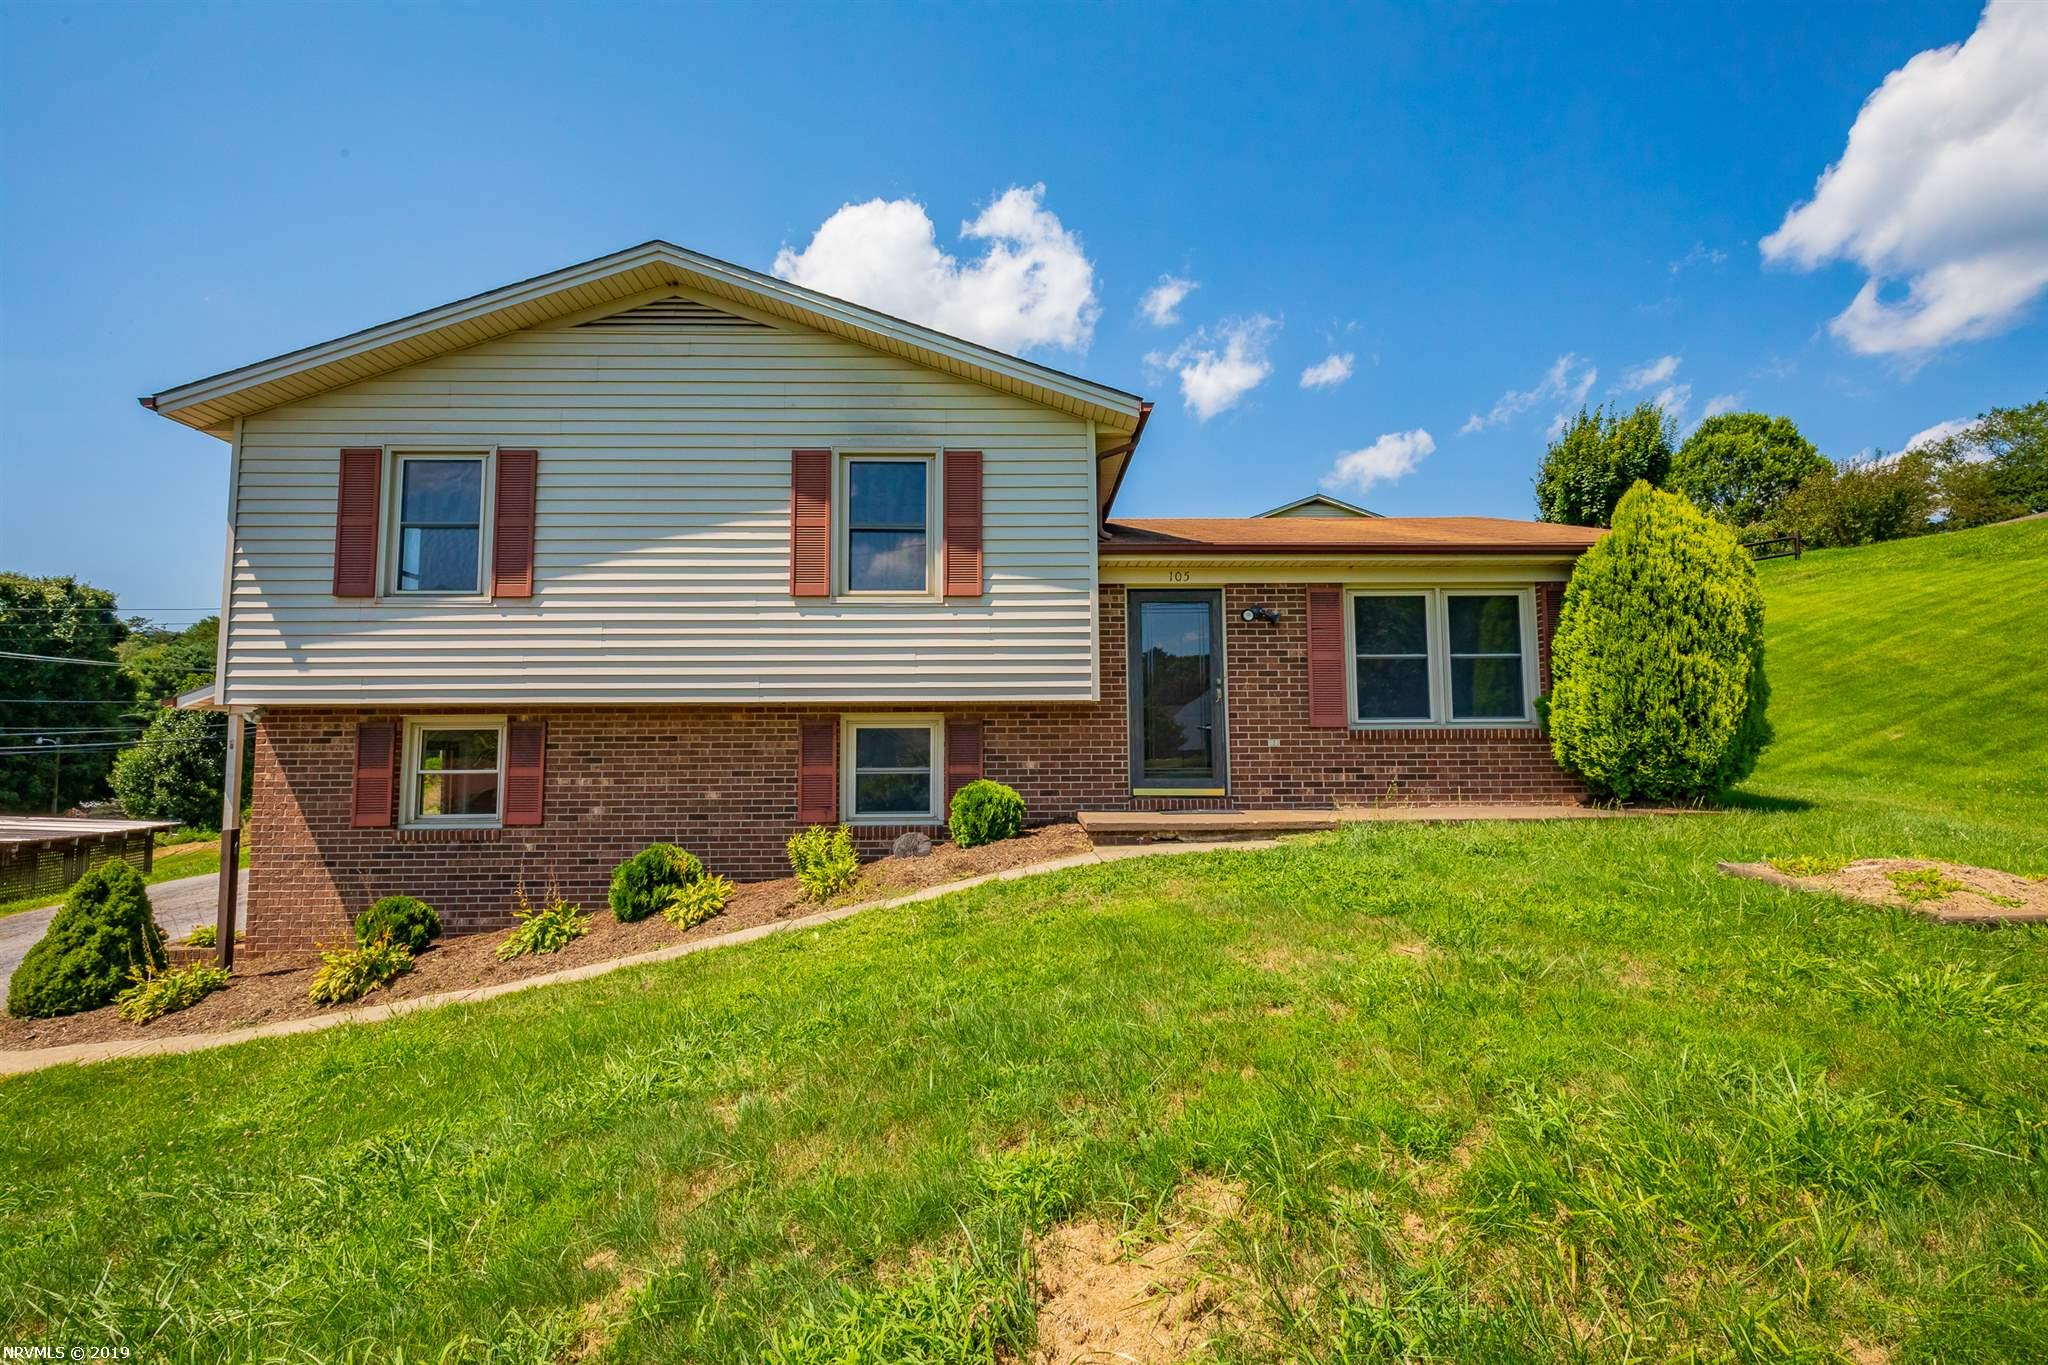 Move-in ready, split level house on 4/10 acre, freshly painted and new carpet. There are only 7 steps between each level and a very nice floor plan. The main level has a living room with beautiful hardwood floors and wood covering the walls for a mountain feel with an electric fireplace. The kitchen is open with eat-in area, pantry, tile on walls, glass sliding doors opening to a 26 x 12 open porch with ceramic tile flooring, all ready for entertaining. The upper level has 3 bedrooms and bathroom, tub/shower has tile walls. The lower level has a bedroom, very large laundry room with a large 8 x 4 closet and the family room could easily be used as a 5th bedroom if needed. The shed and one car carport has electricity. Large yard with privacy fence along one side. The parcel fronts 3 roads so you aren't right next to your neighbor. Great for a family or a mountain getaway in the beautiful Blue Ridge Mountains. The New River and New River Trail close by. Home inspection report on file.